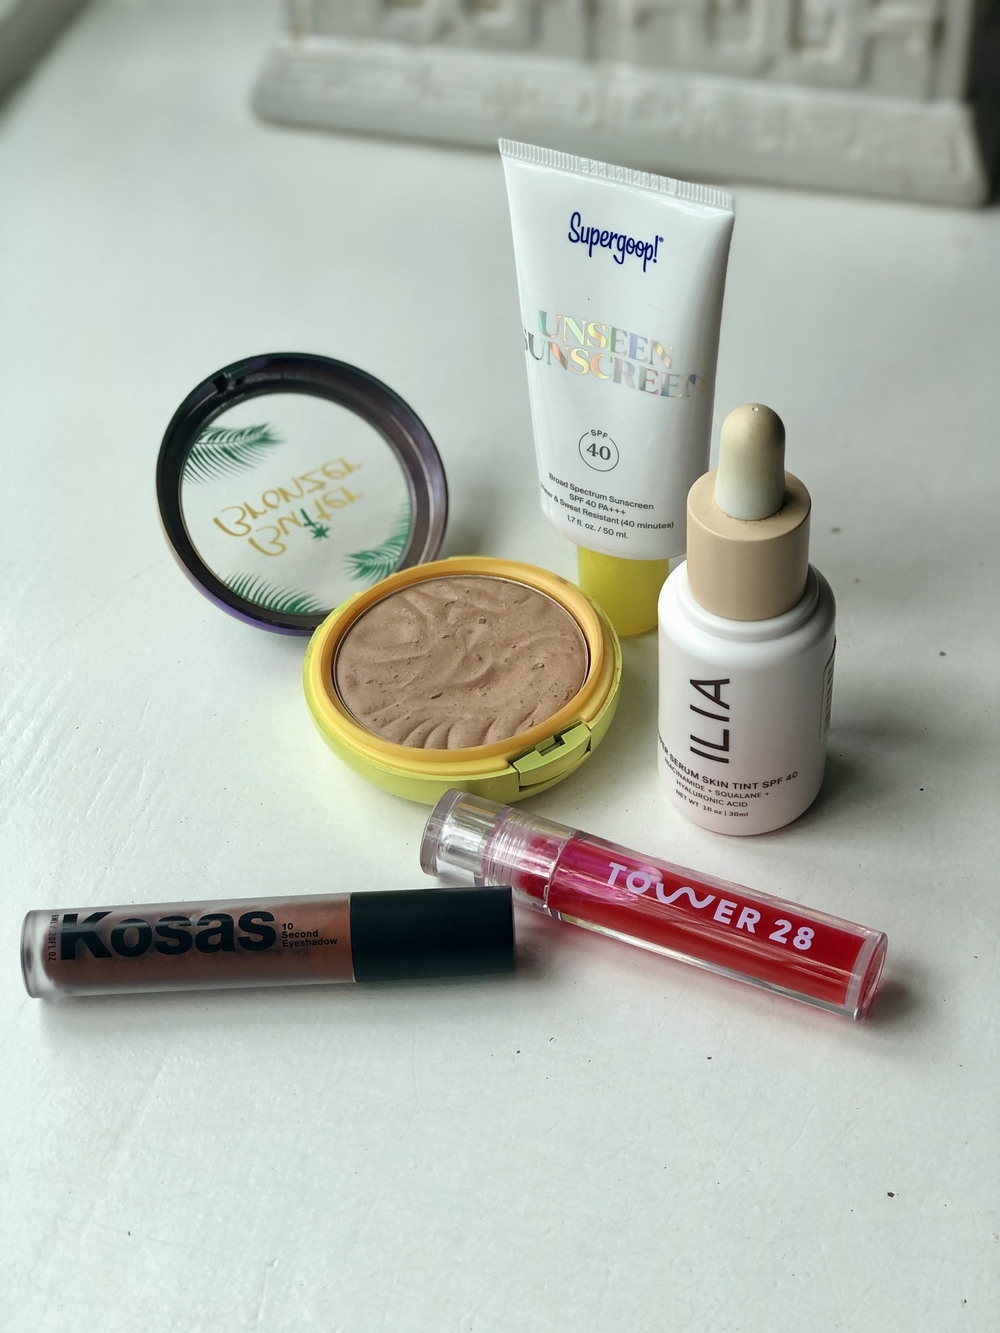 get your stash summer-ready with a good sunscreen, bronzer, tinted moisturizer, long-wear eyeshadow & lip gloss